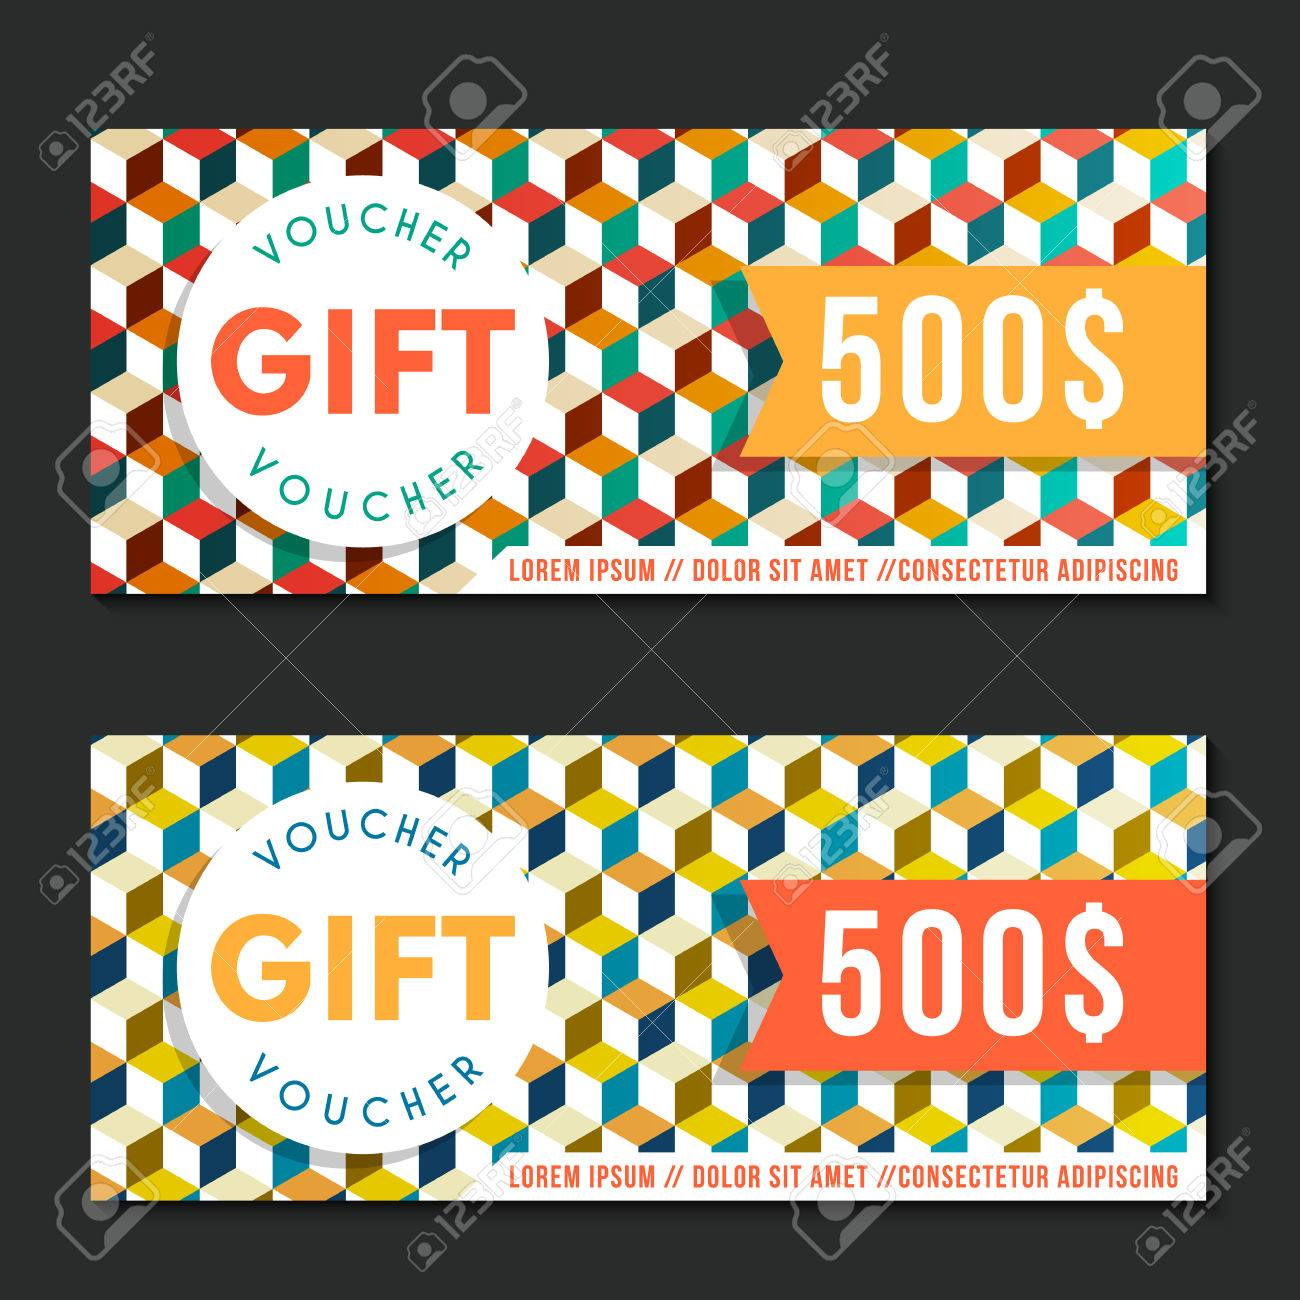 Voucher vector template with geometric pattern vintage style. For certificate, coupon, discount or gift card, banner, invitation, ticket, shopping card, customer sale and promotion, web design banner. - 50264766